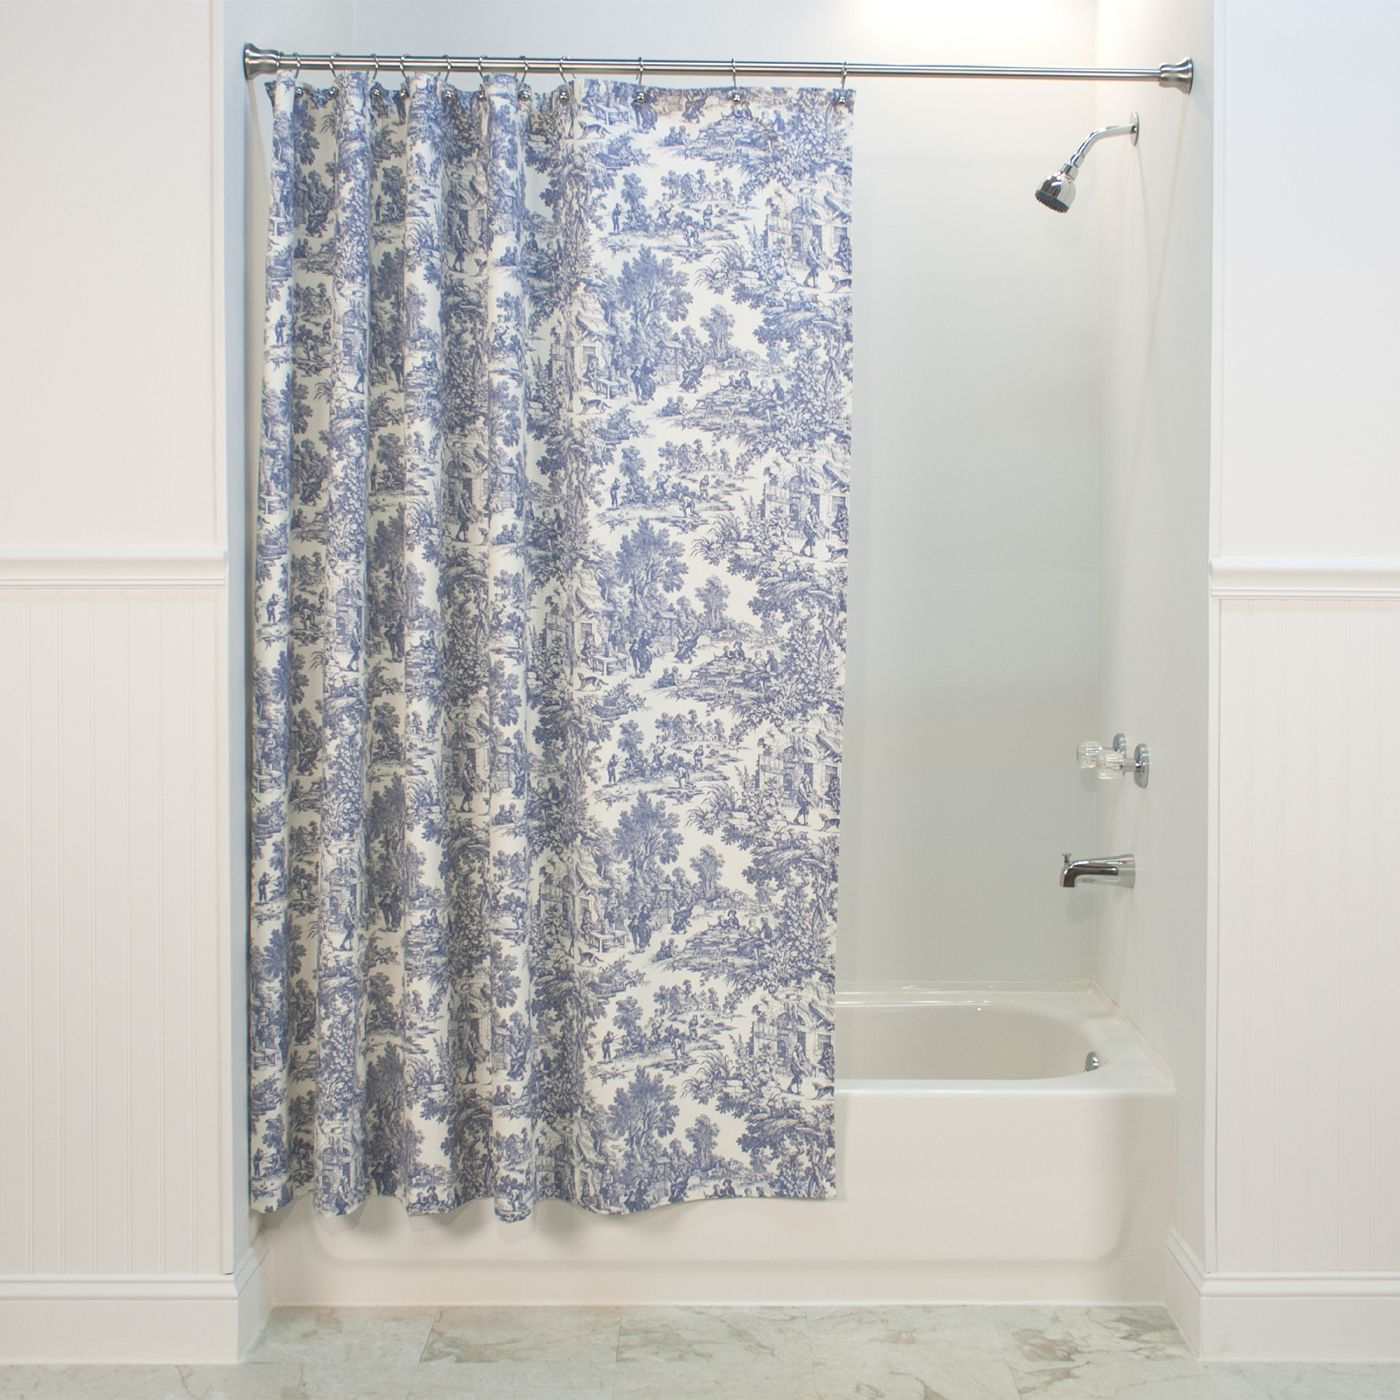 Toile Shower Curtains   Installing A Brand New Shower Curtain Could  Function As The Coolest Solution To Cheer Up Your Toilet